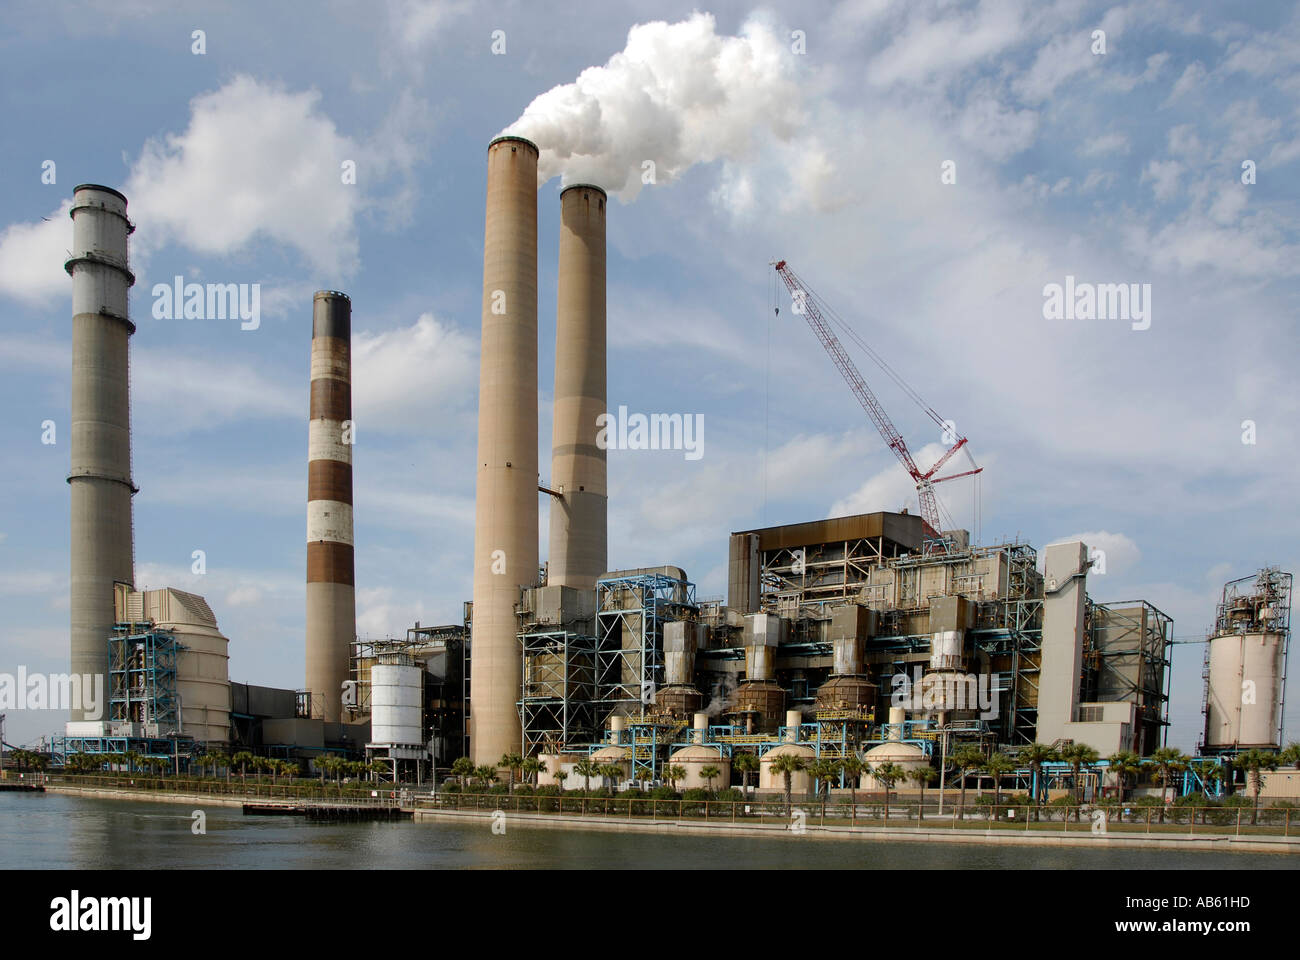 TECO Electrical power plant in Tampa Florida showing scrubbers used to remove sulfur from the smoke in a coal burning facility - Stock Image